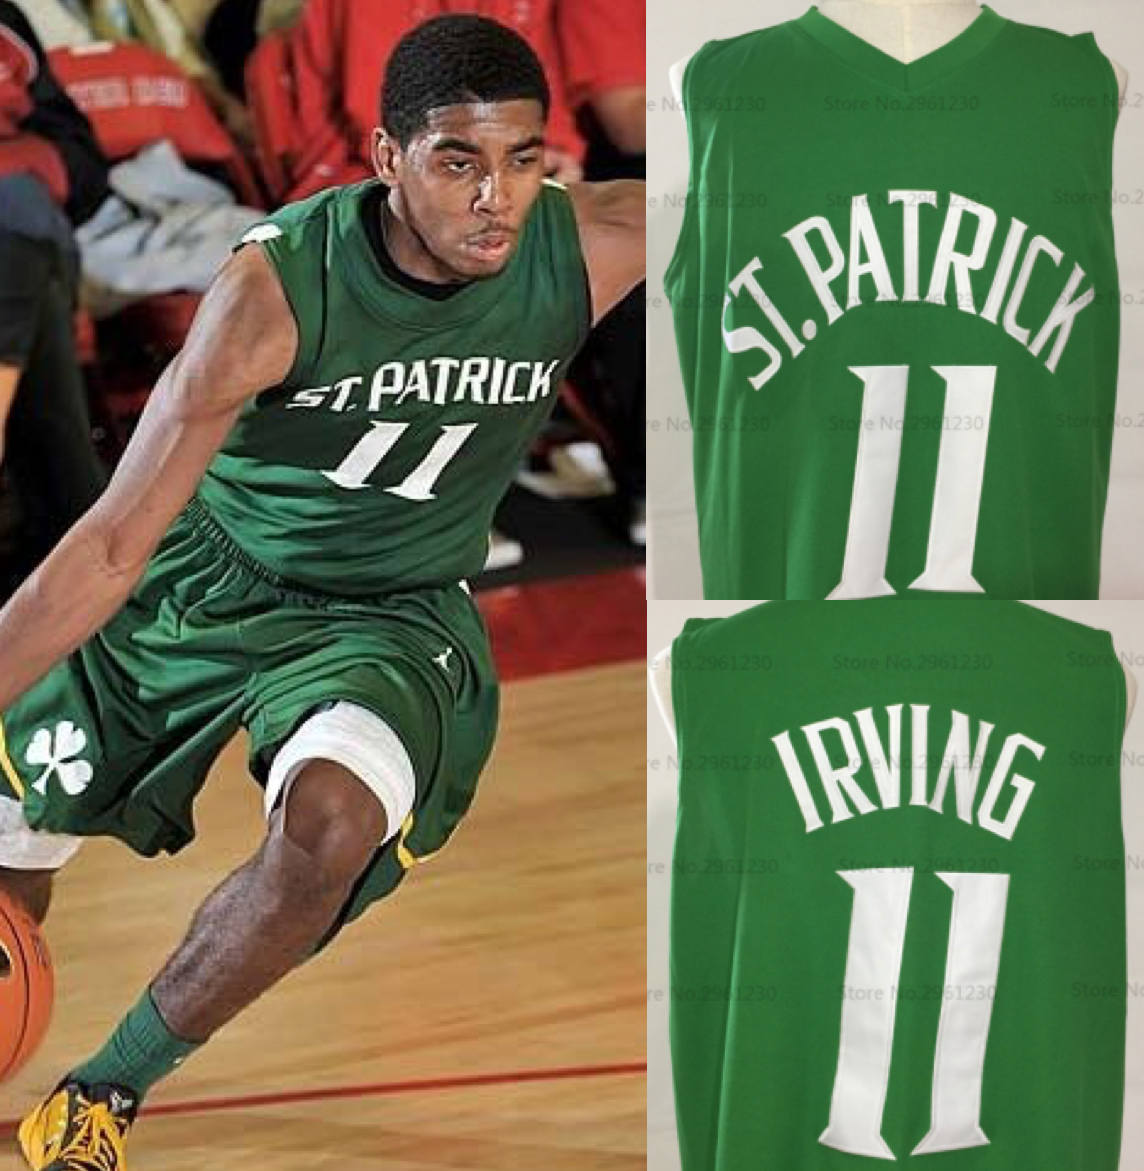 separation shoes c6df1 44a6a Kyrie Irving St. Patrick High School Basketball Jersey (Away) | Custom  Throwback Retro Jersey